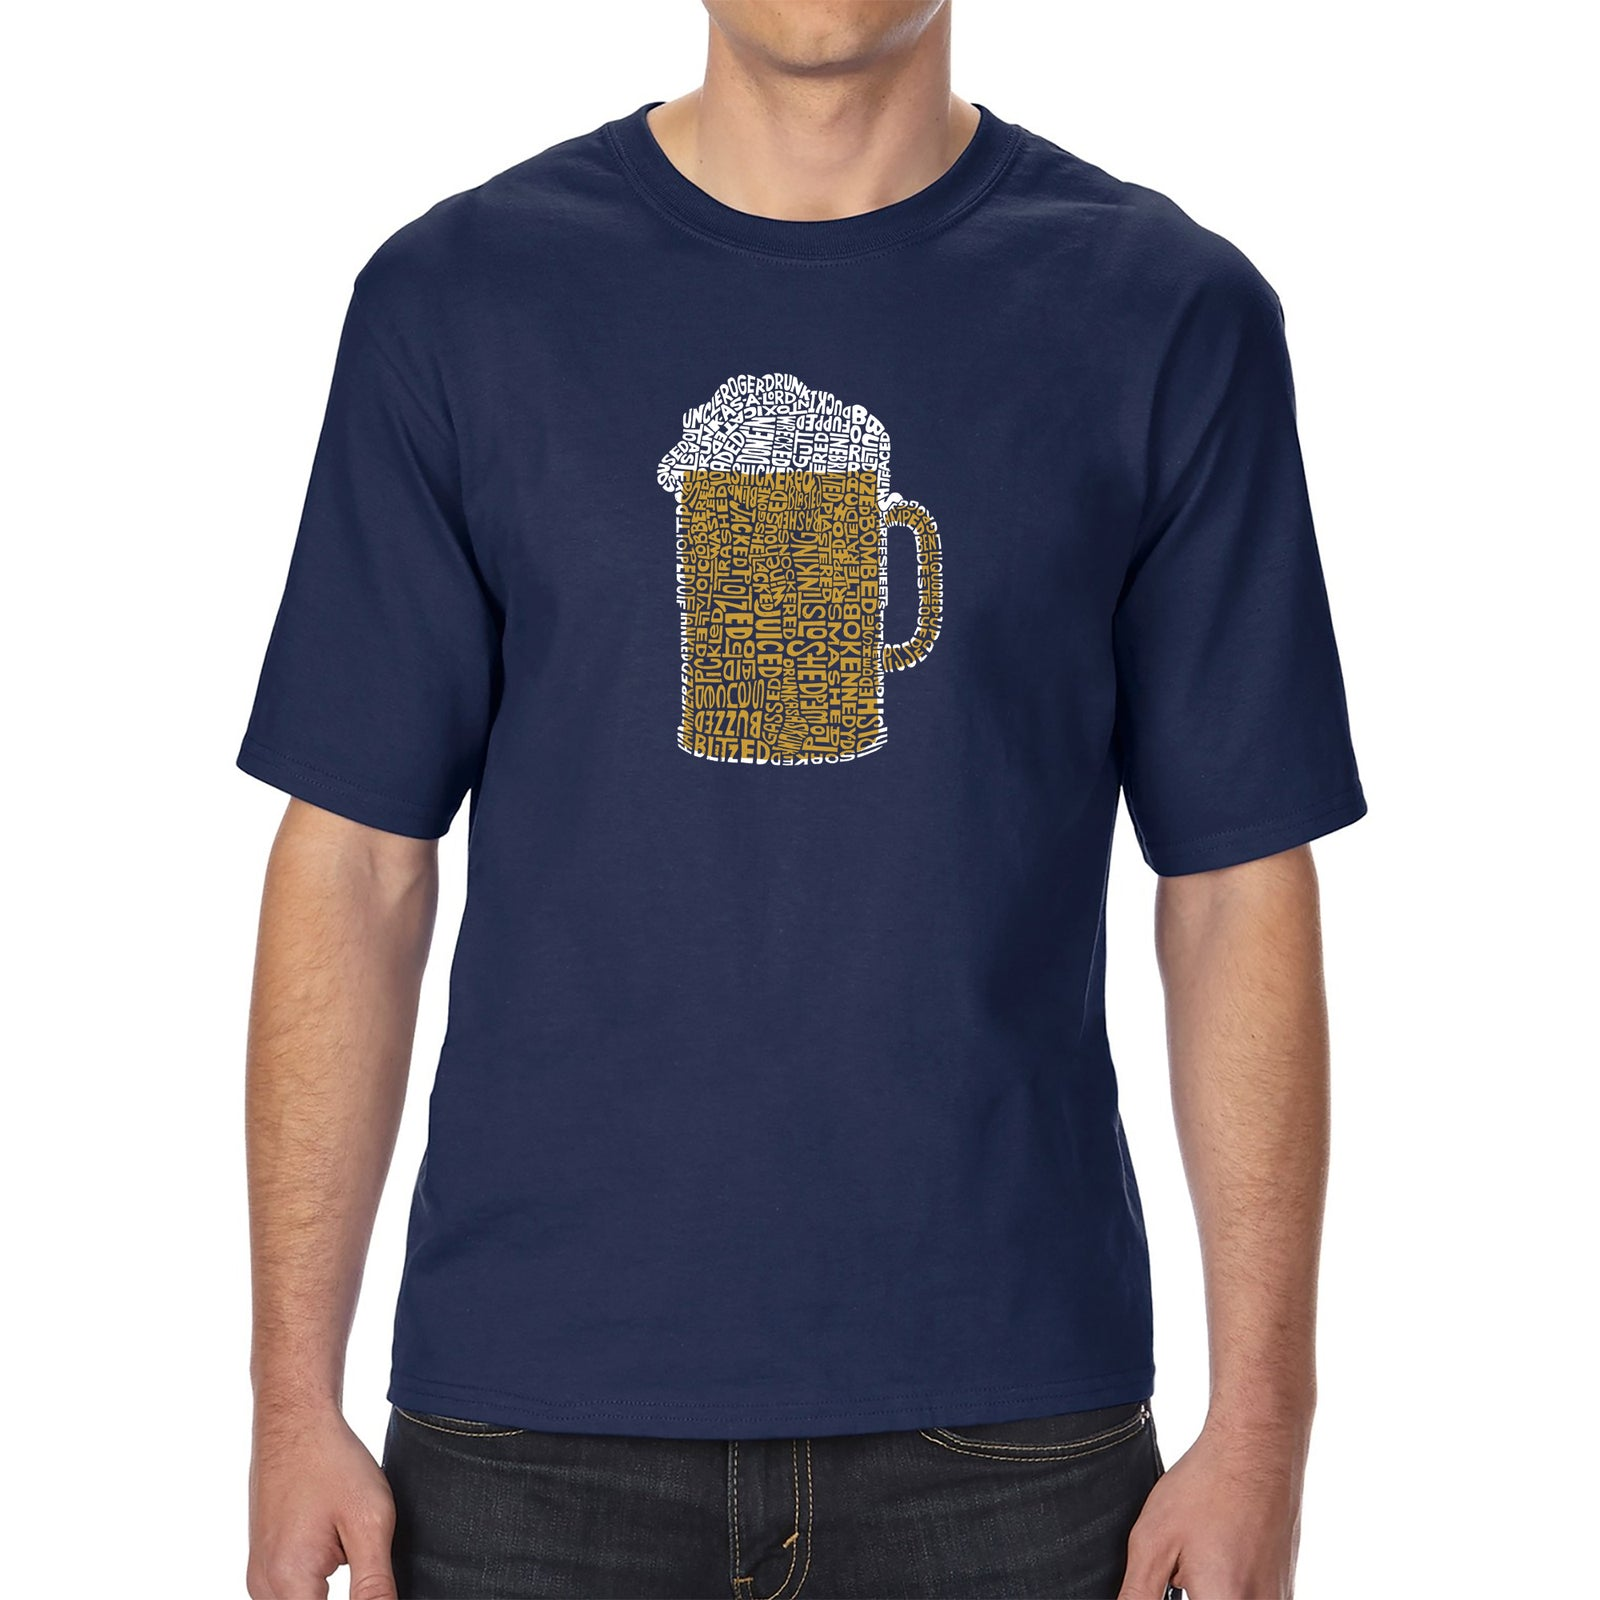 Men's Tall and Long Word Art T-shirt - Slang Terms for Being Wasted